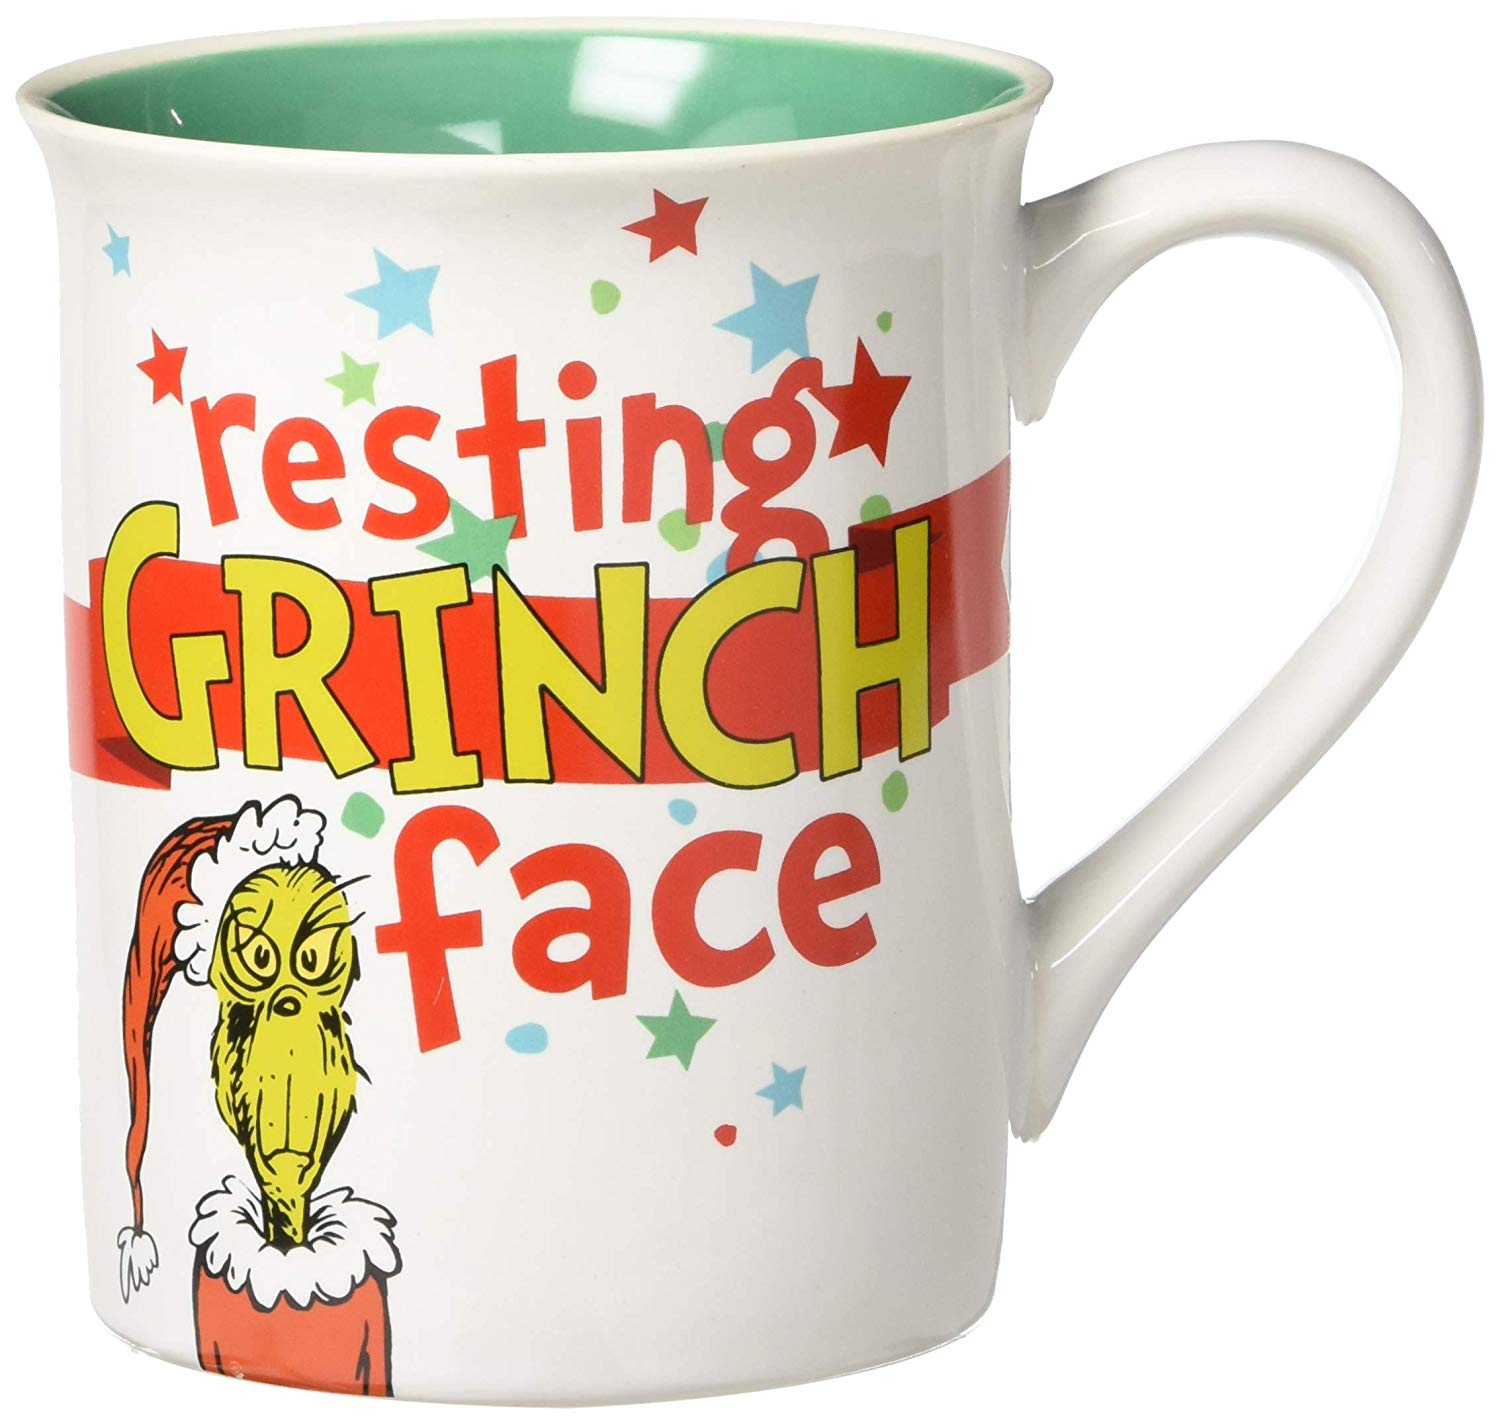 Department 56 Resting Grinch Face Mug